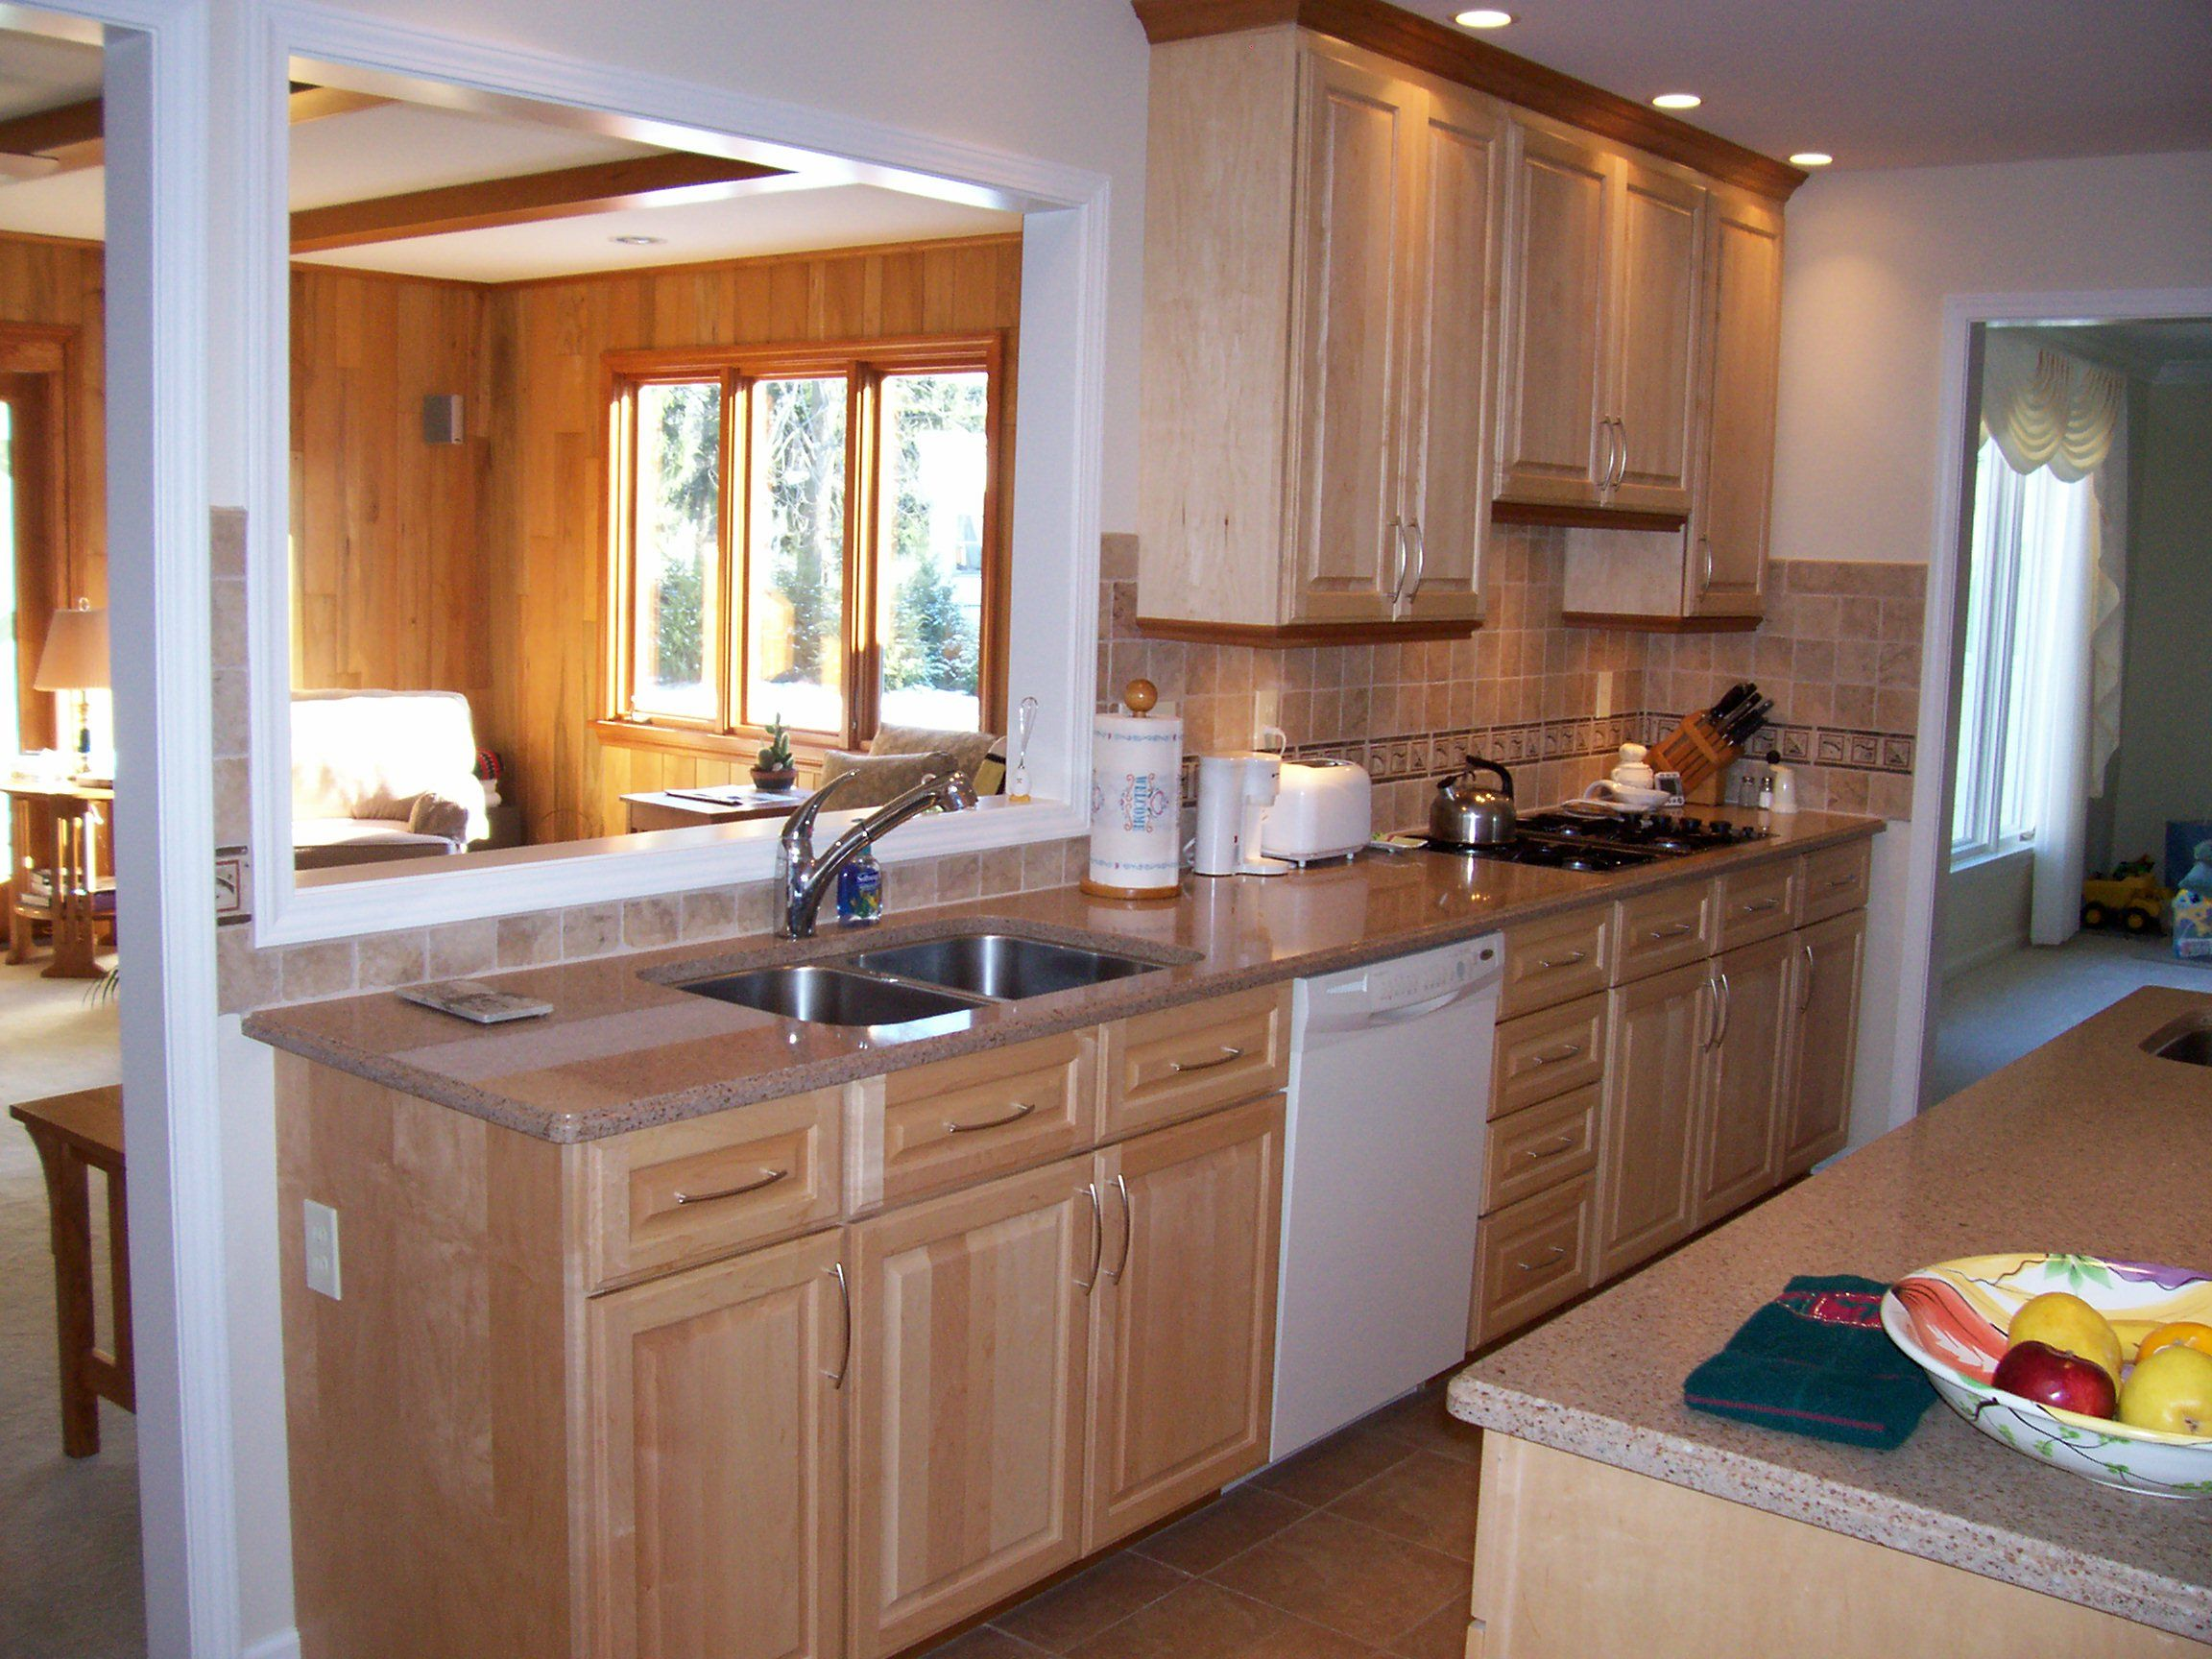 Maple cabinets with quartz countertops. (With images ... on Kitchen Countertops With Maple Cabinets  id=87932